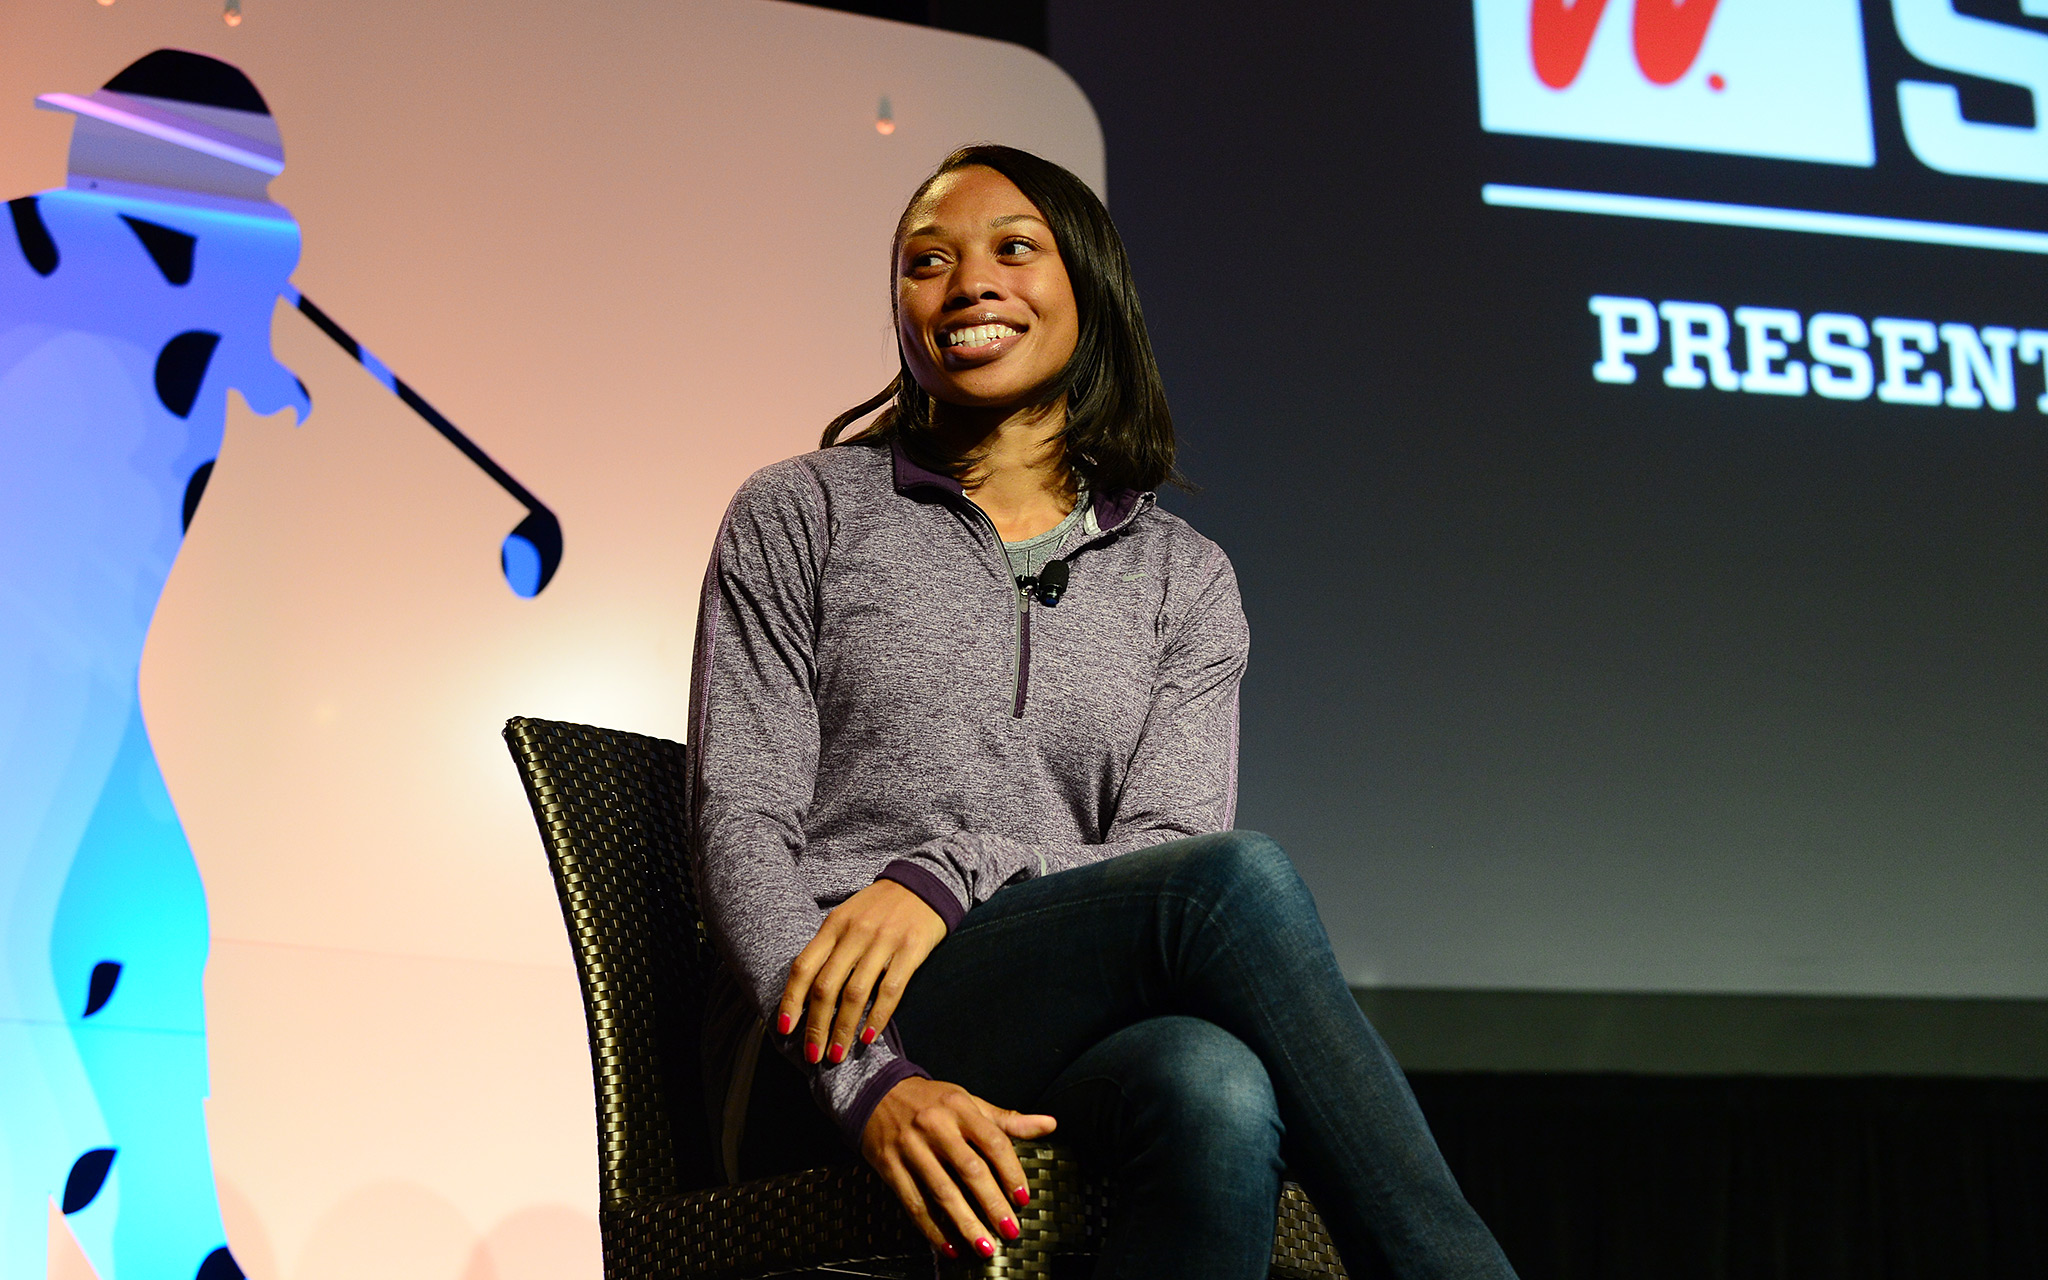 Olympic gold medalist Allyson Felix shared her experiences of how she learned to become a more positive role model for kids. Felix's most important influence? Her mother.